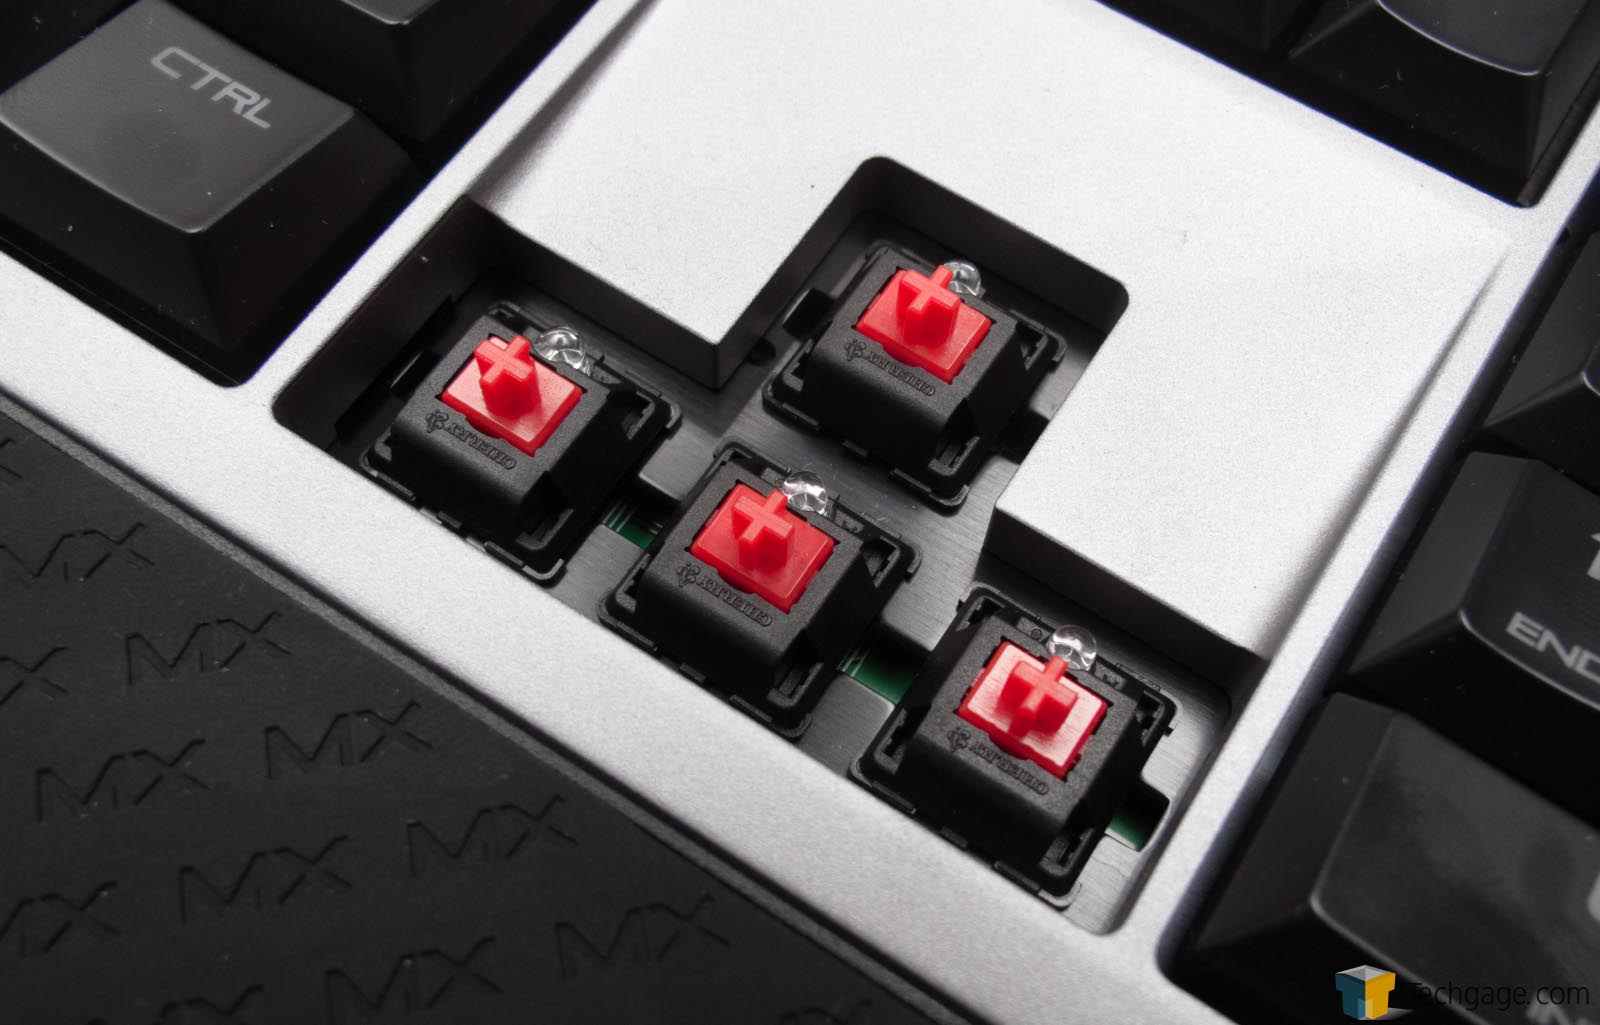 Fast Simple Solid Cherry Mx Board 6 0 Keyboard Review Techgage